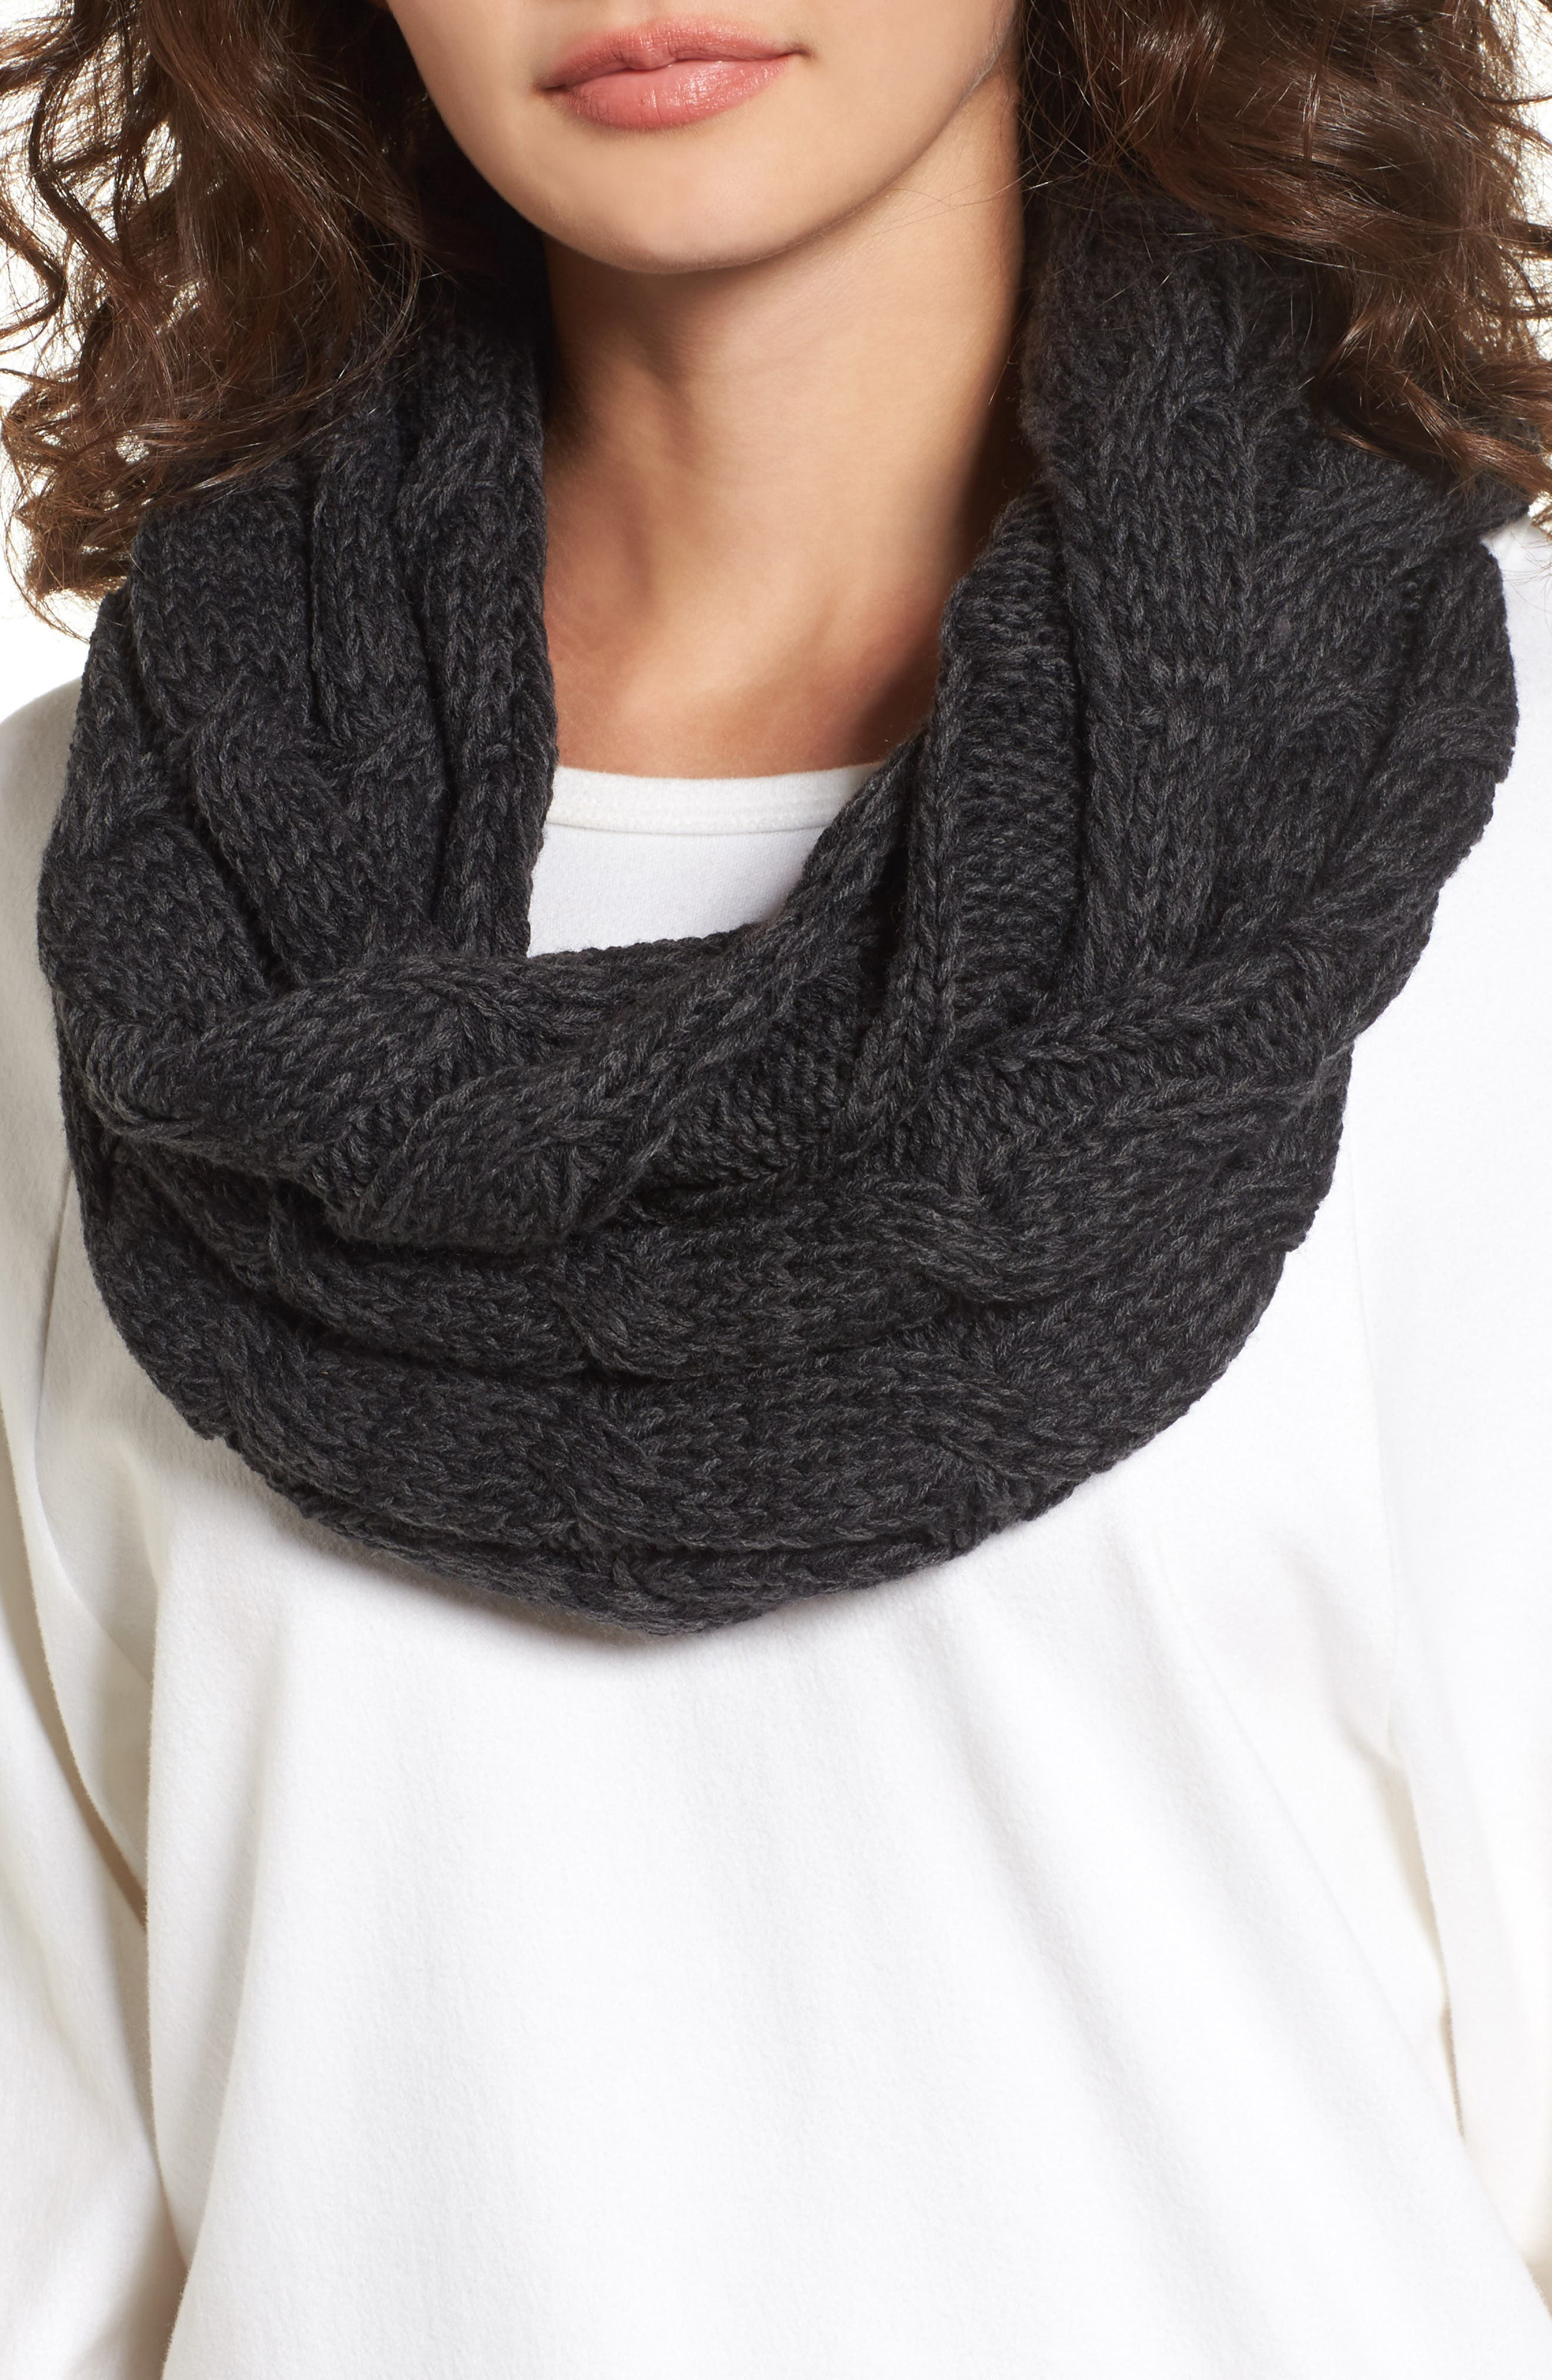 Knit Infinity Scarf,                         Main,                         color, Black/ Grey